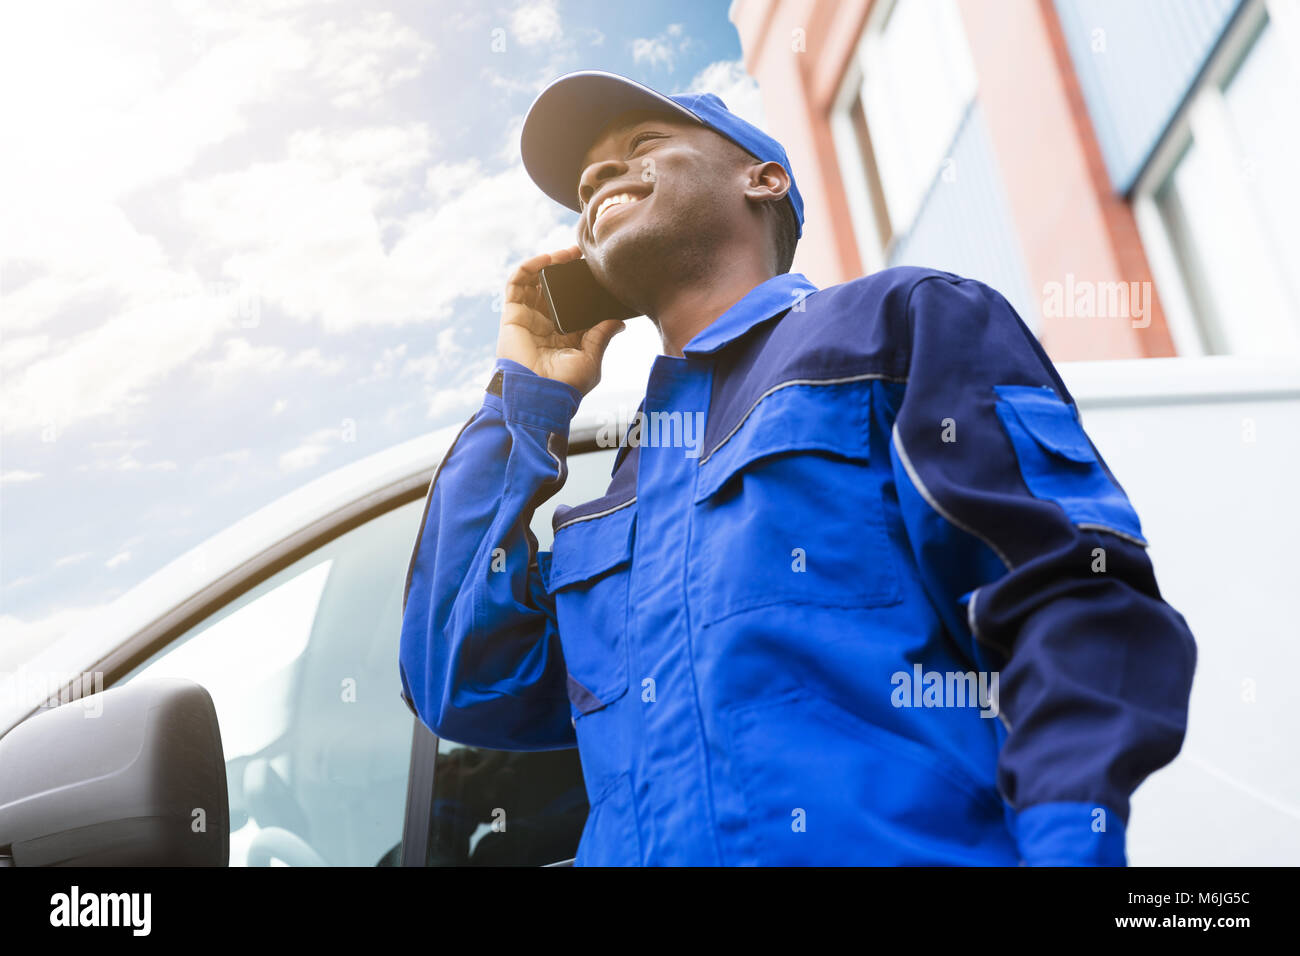 Low Angle View Of Happy Delivery Young Man Standing Near Van Talking On Cellphone - Stock Image